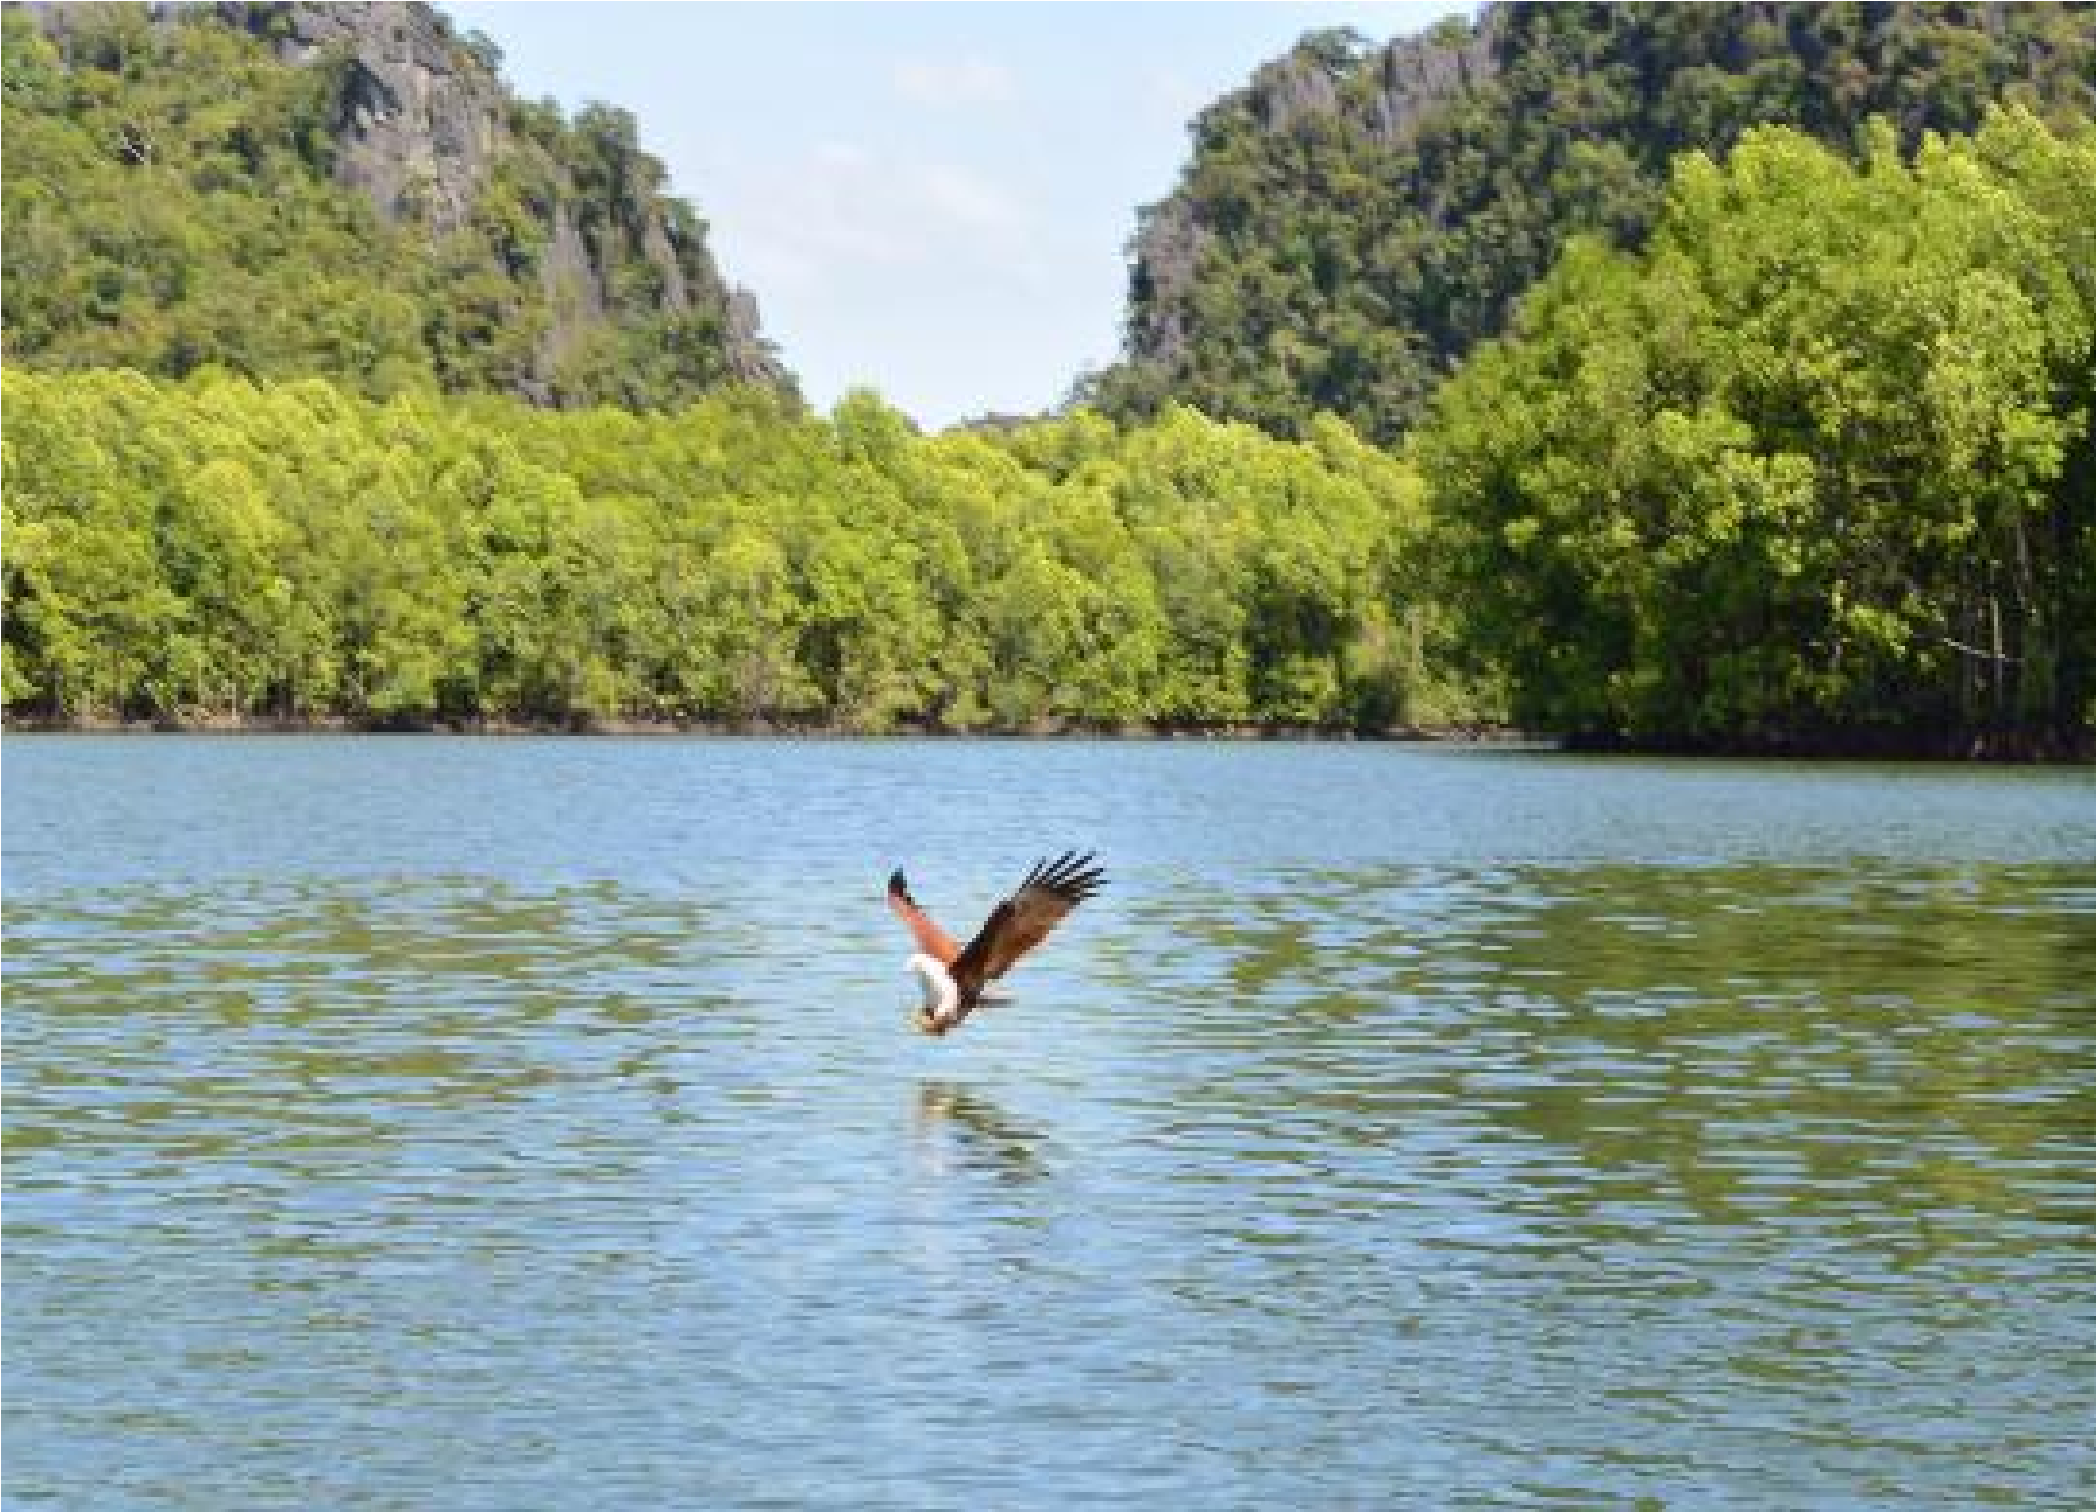 Top 4 Fascinating Places to Visit in Malaysia for the Travel Enthusiasts